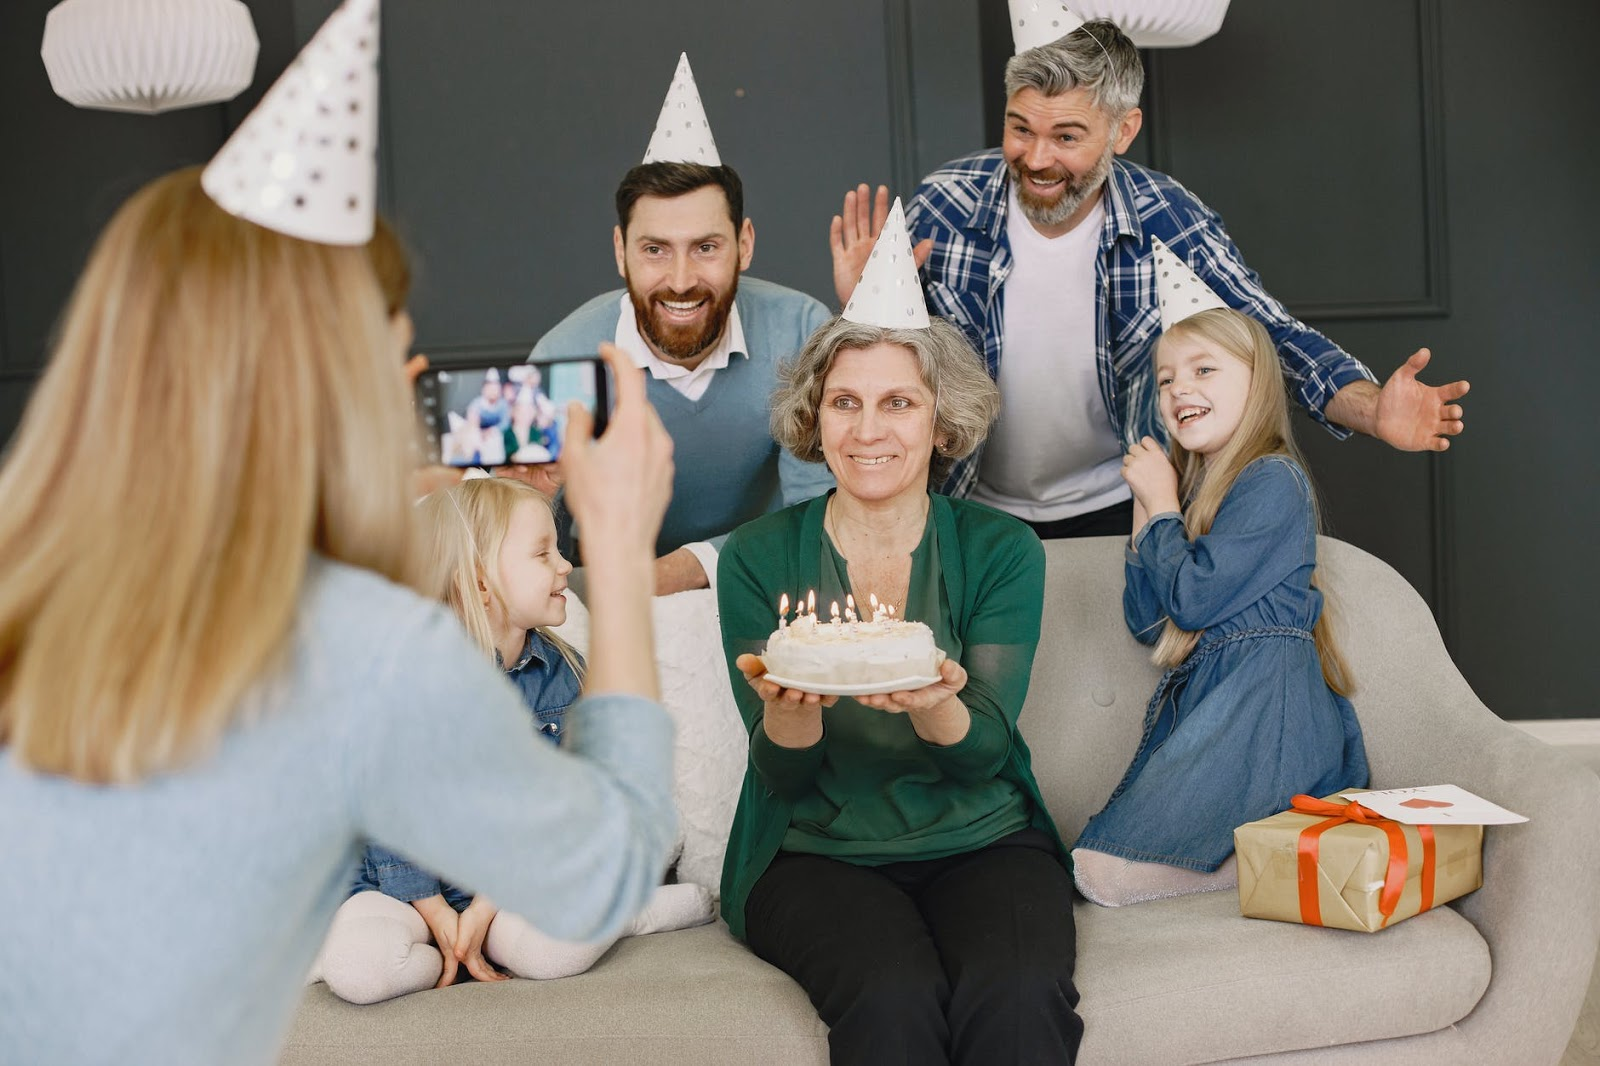 Family poses for a picture with party hats and a birthday cake